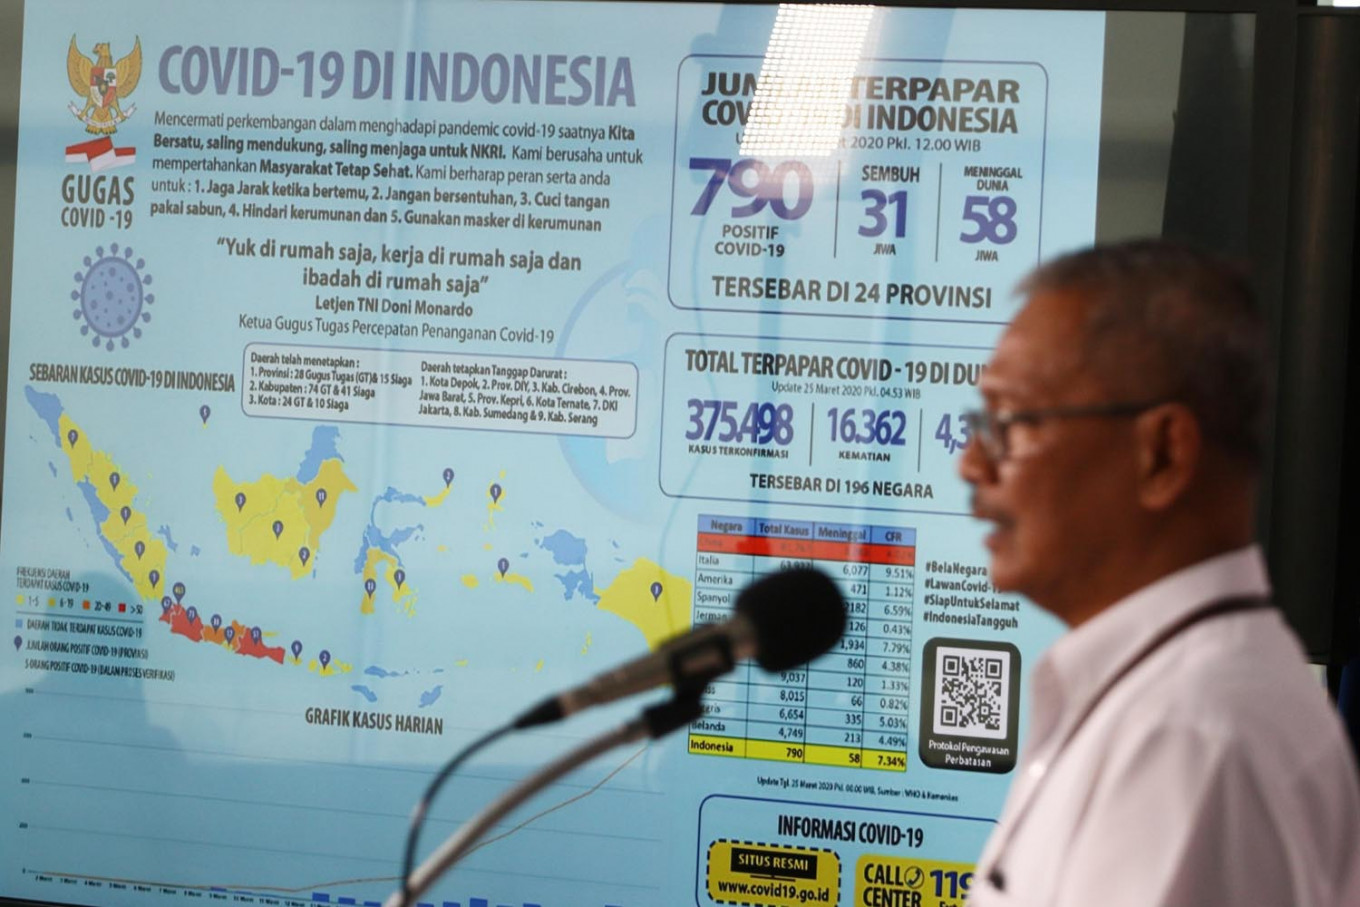 Indonesia records 973 new COVID-19 cases as East Java becomes new epicenter